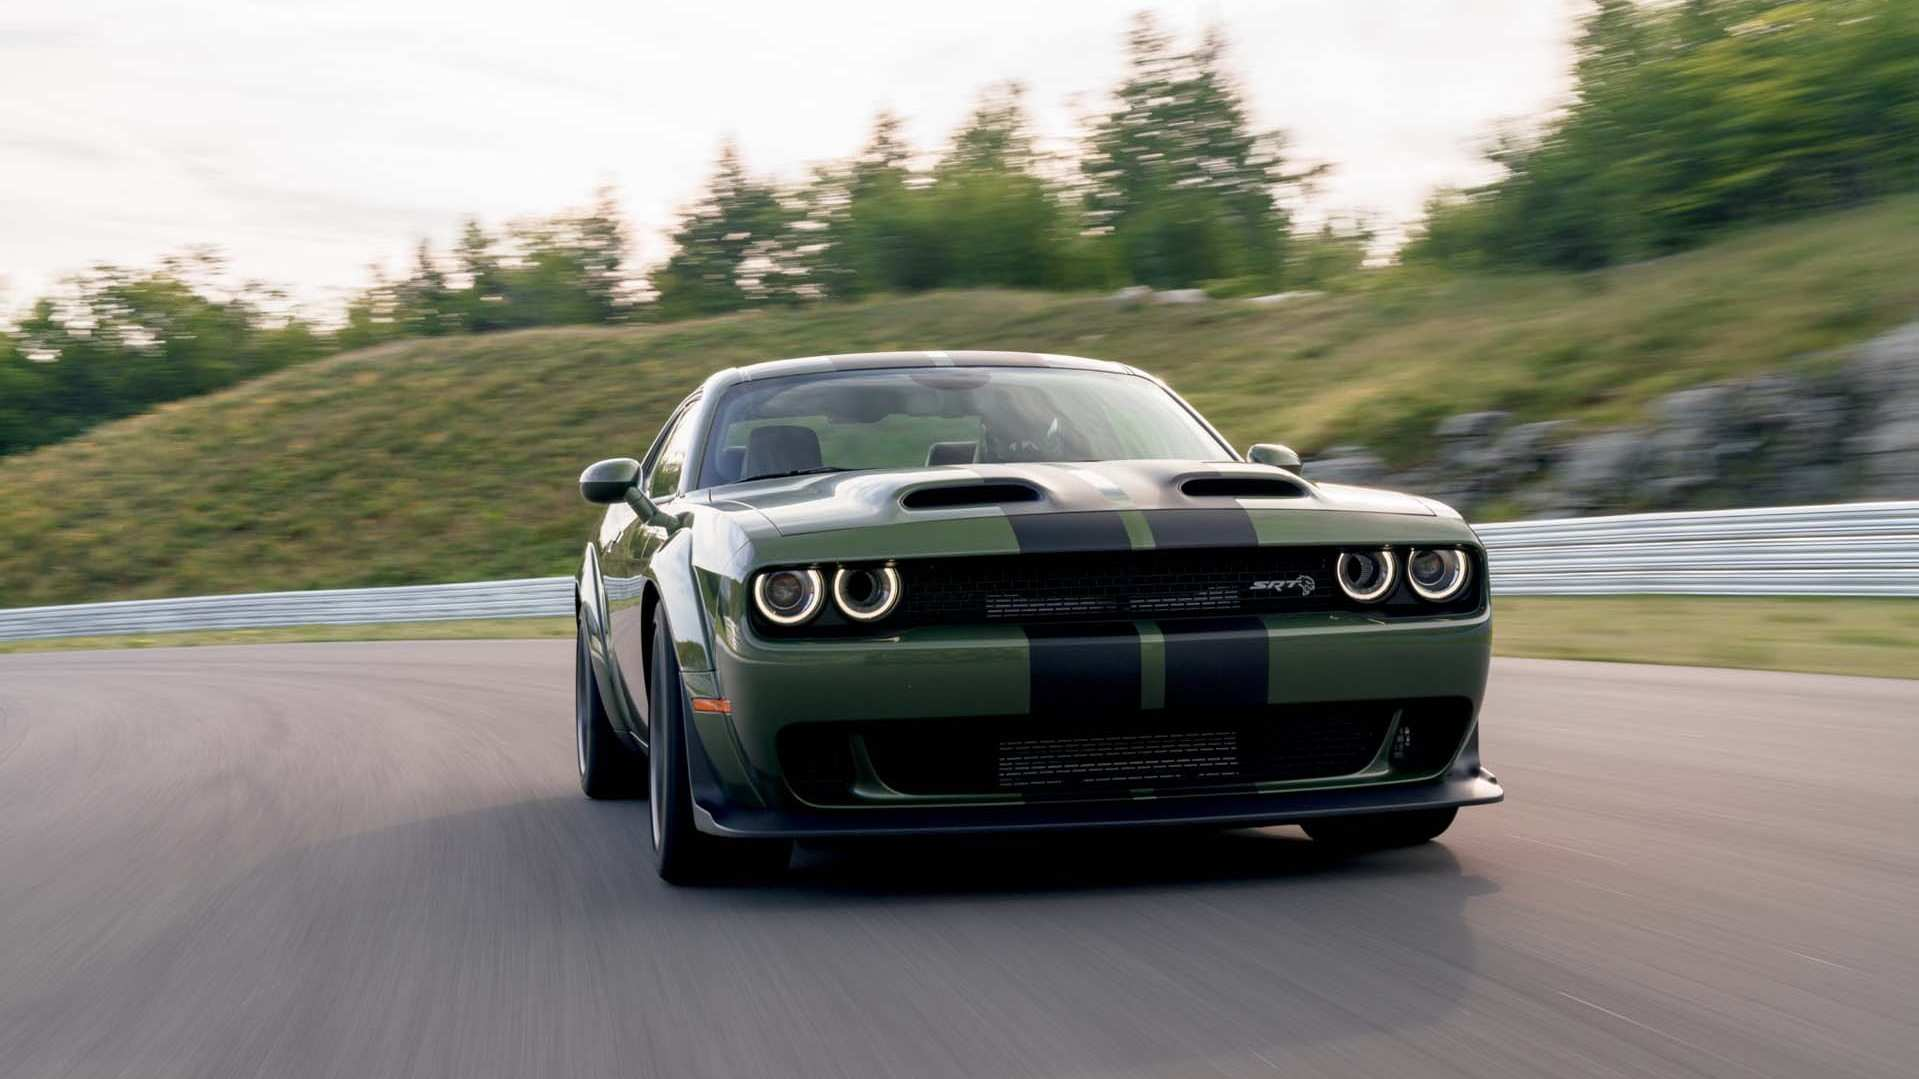 83 New 2020 Dodge Challenger Wide Body Model